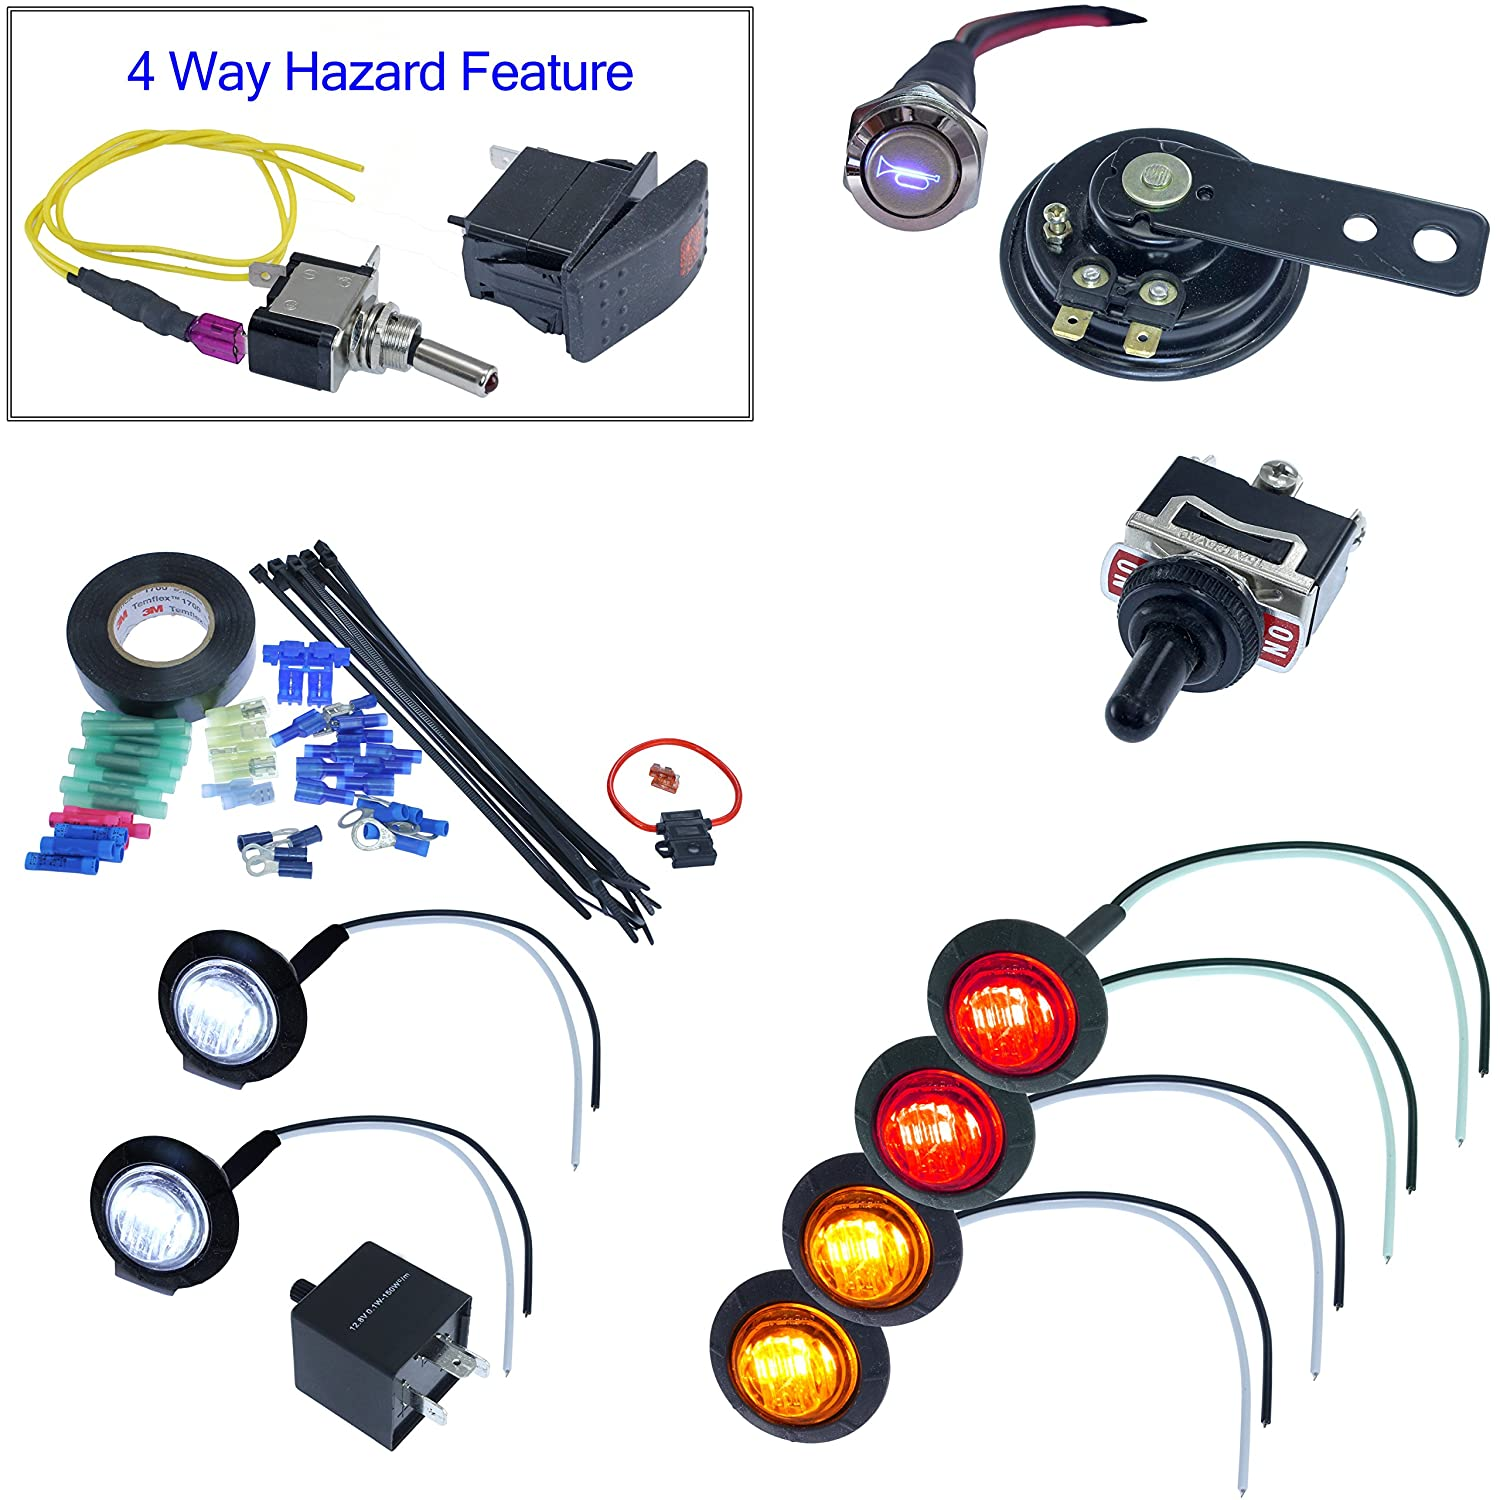 Universal Utv Atv Diy Street Legal Kit Turn Signal Dune Buggy Wiring Harness System With Horn Round Led Toggle Switch Automotive